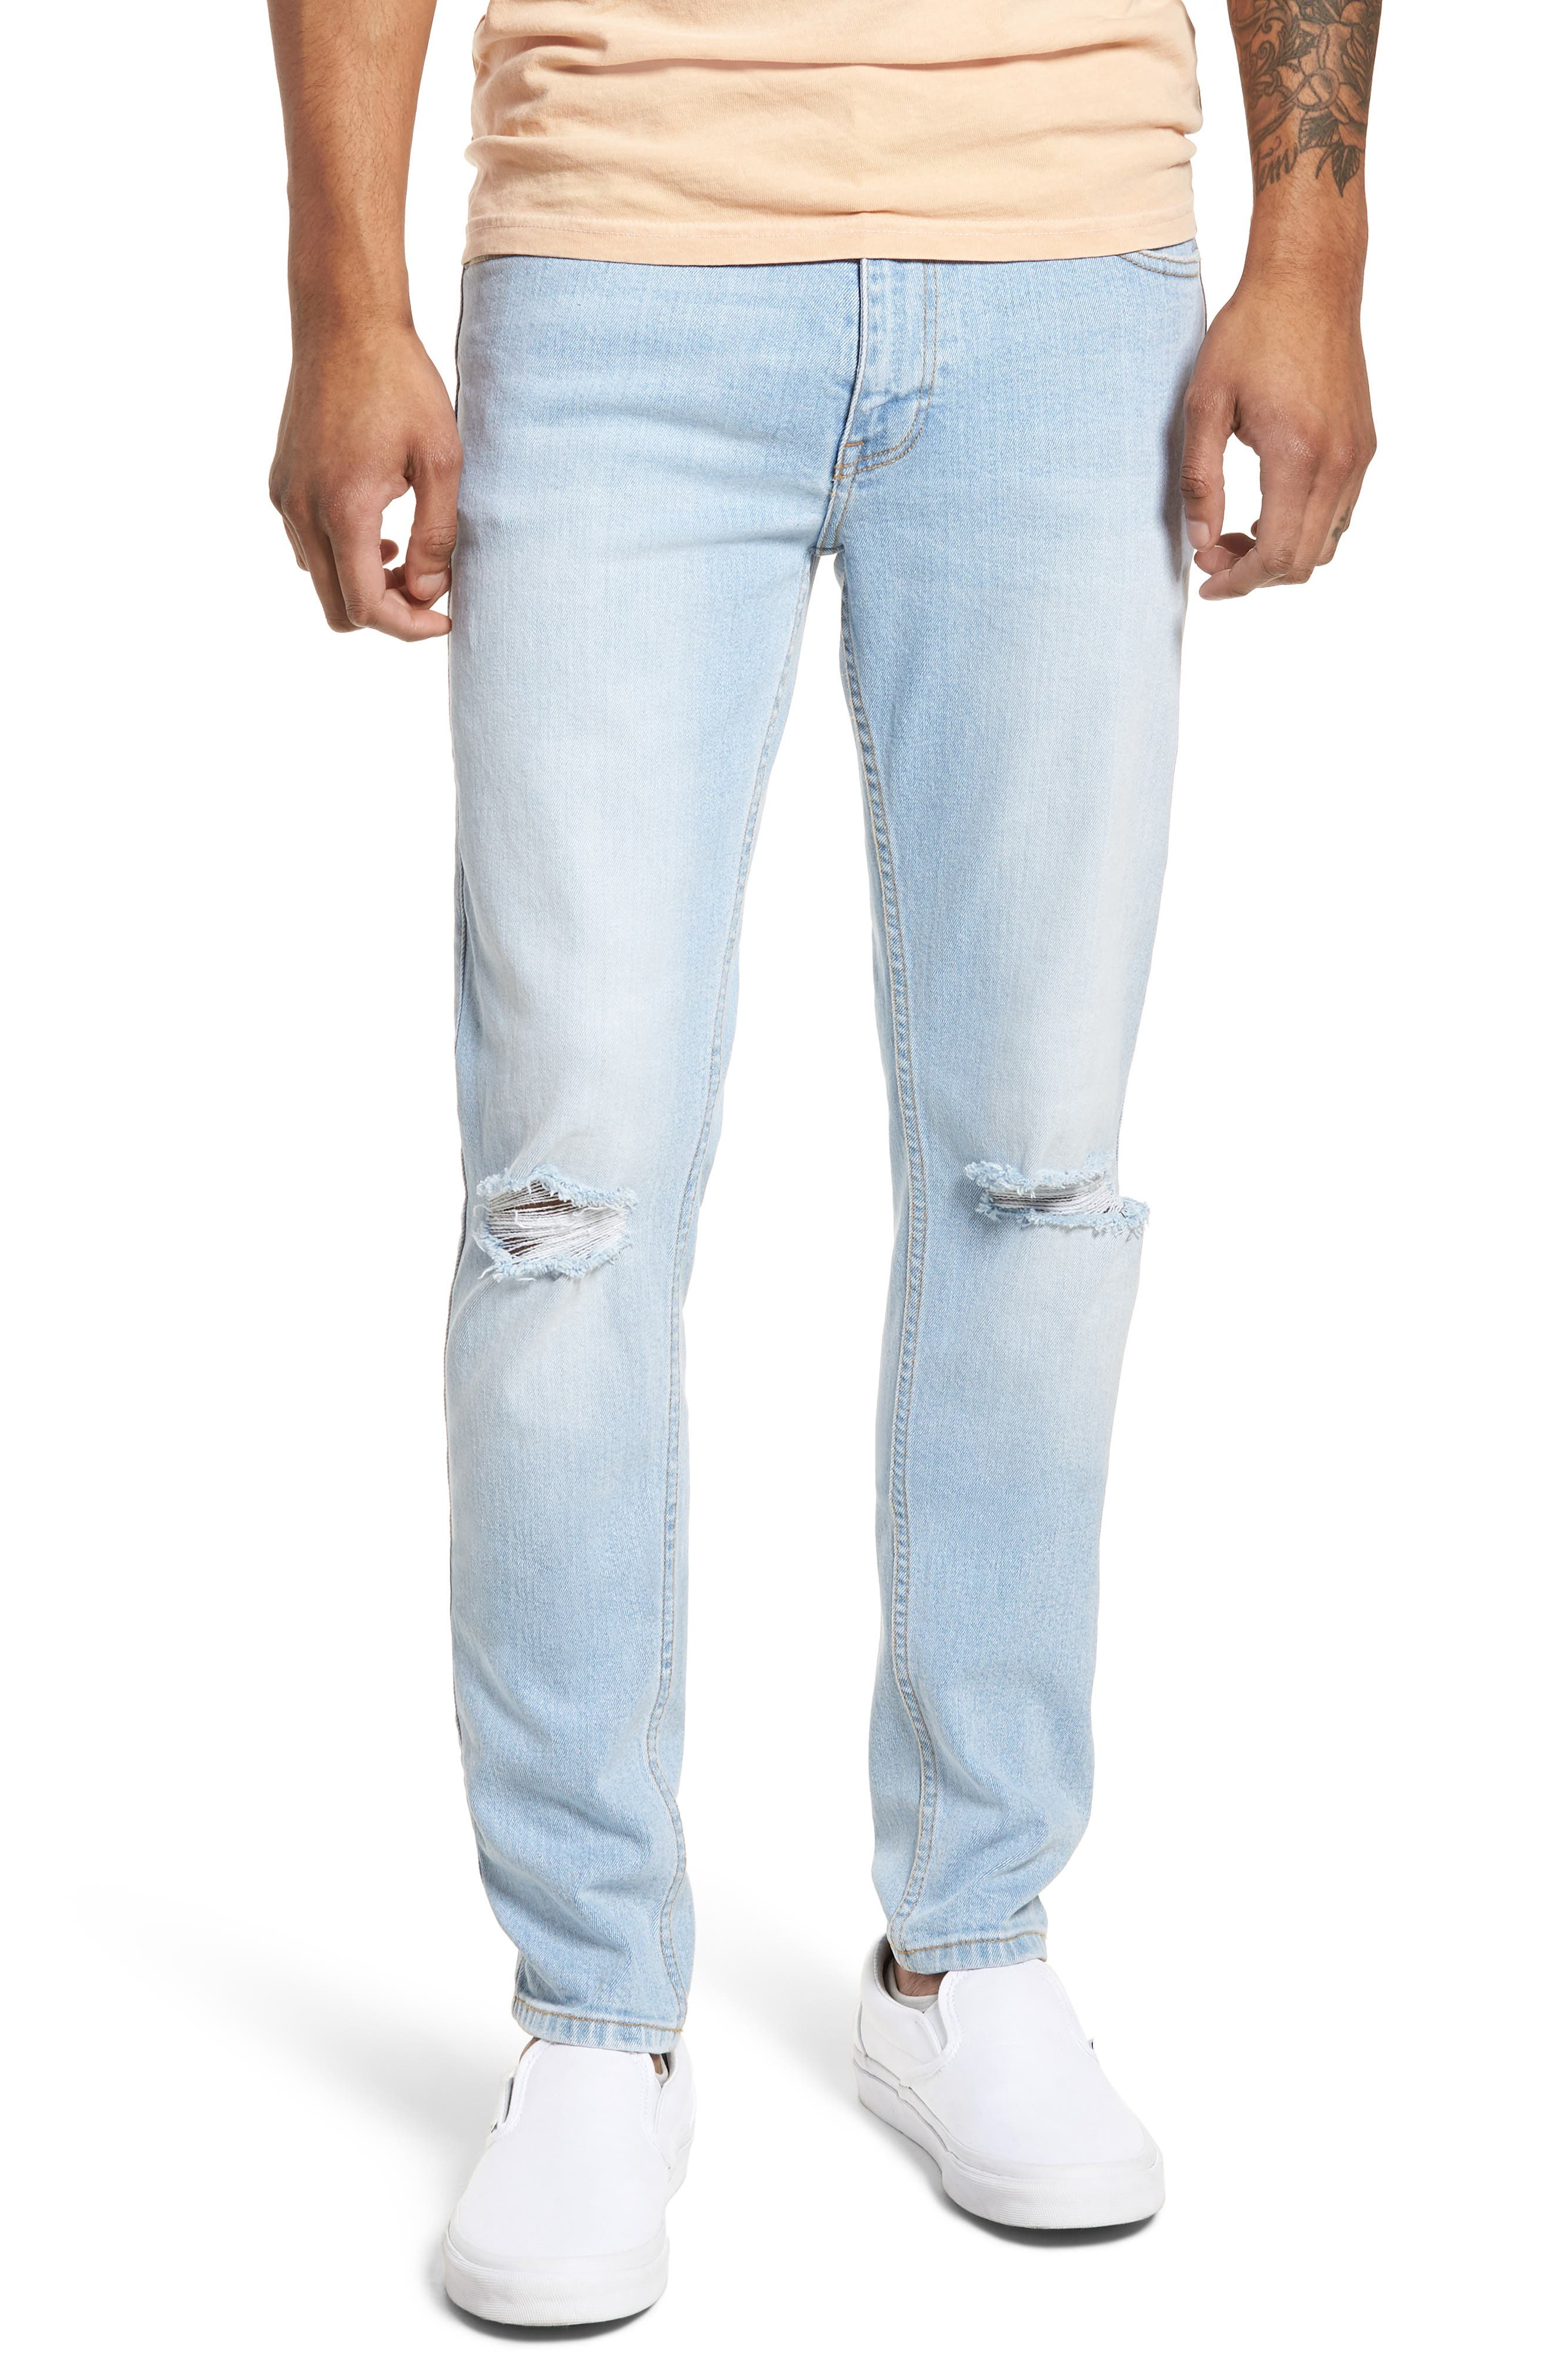 Dr. Denim Supply Co. Clark Slim Straight Leg Jeans (Superlight Blue Ripped)